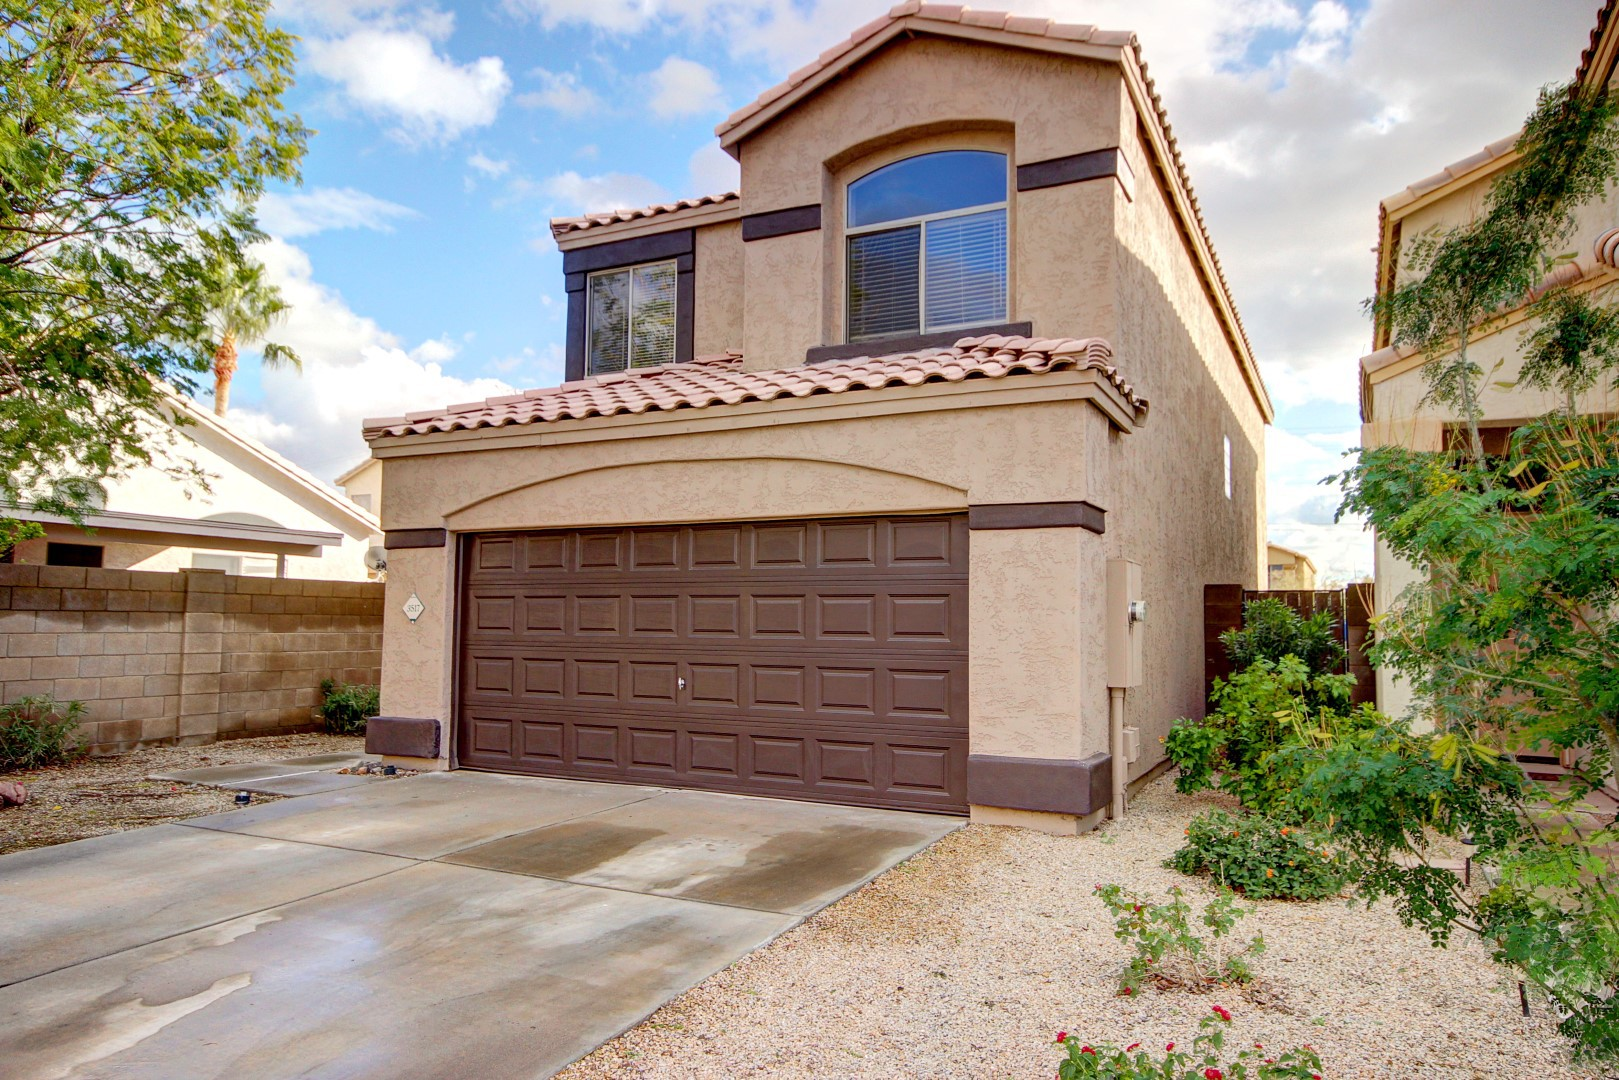 Gated community home for sale in glendale andrew robb for Homes for sale glendale